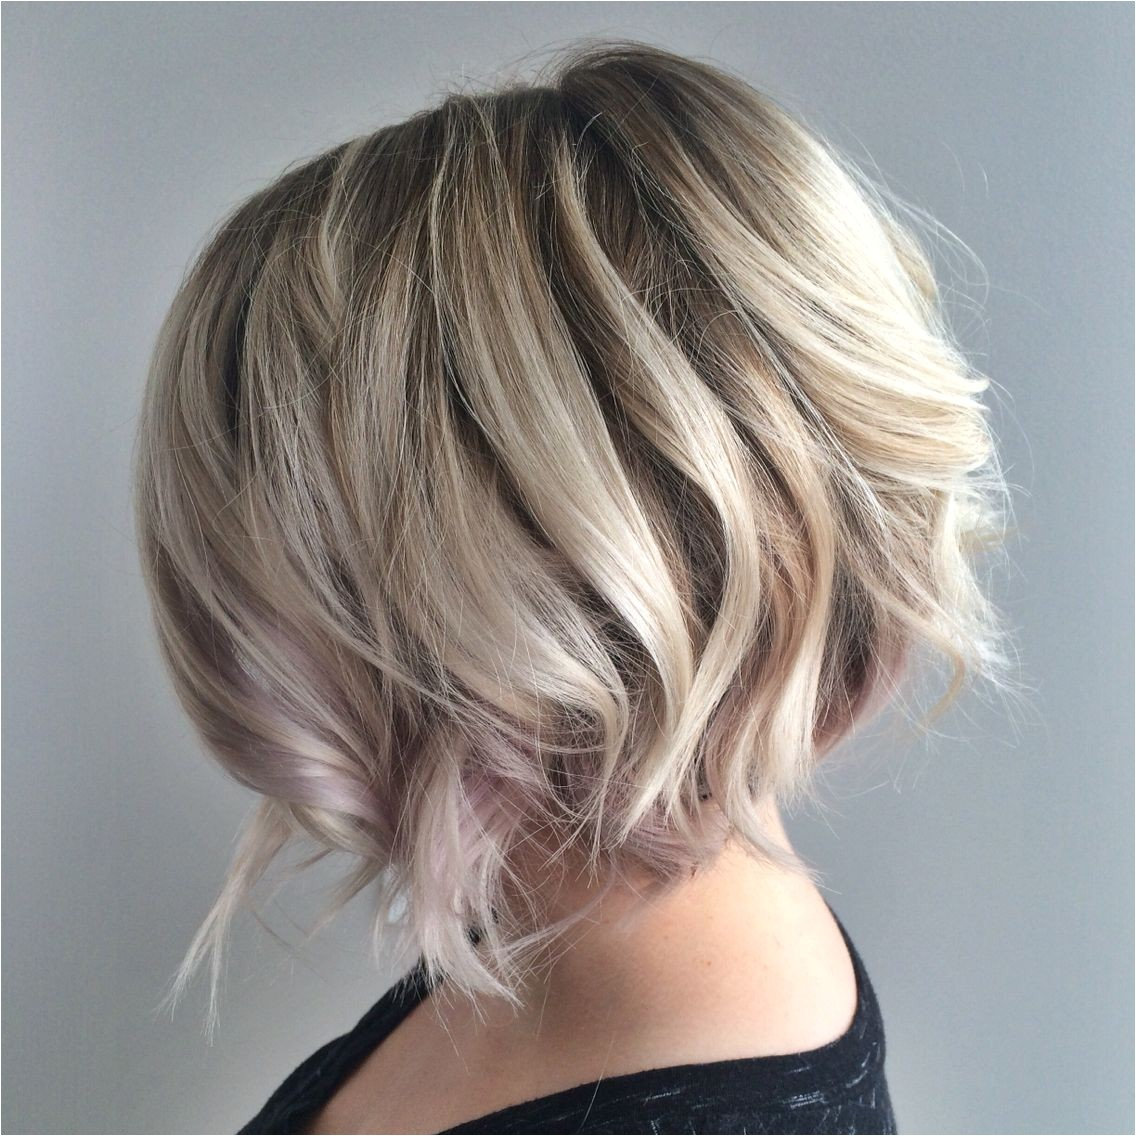 Blonde textured Bob with undercut Platinum Blonde Blonde Balayage Blonde highlights Ashy blonde